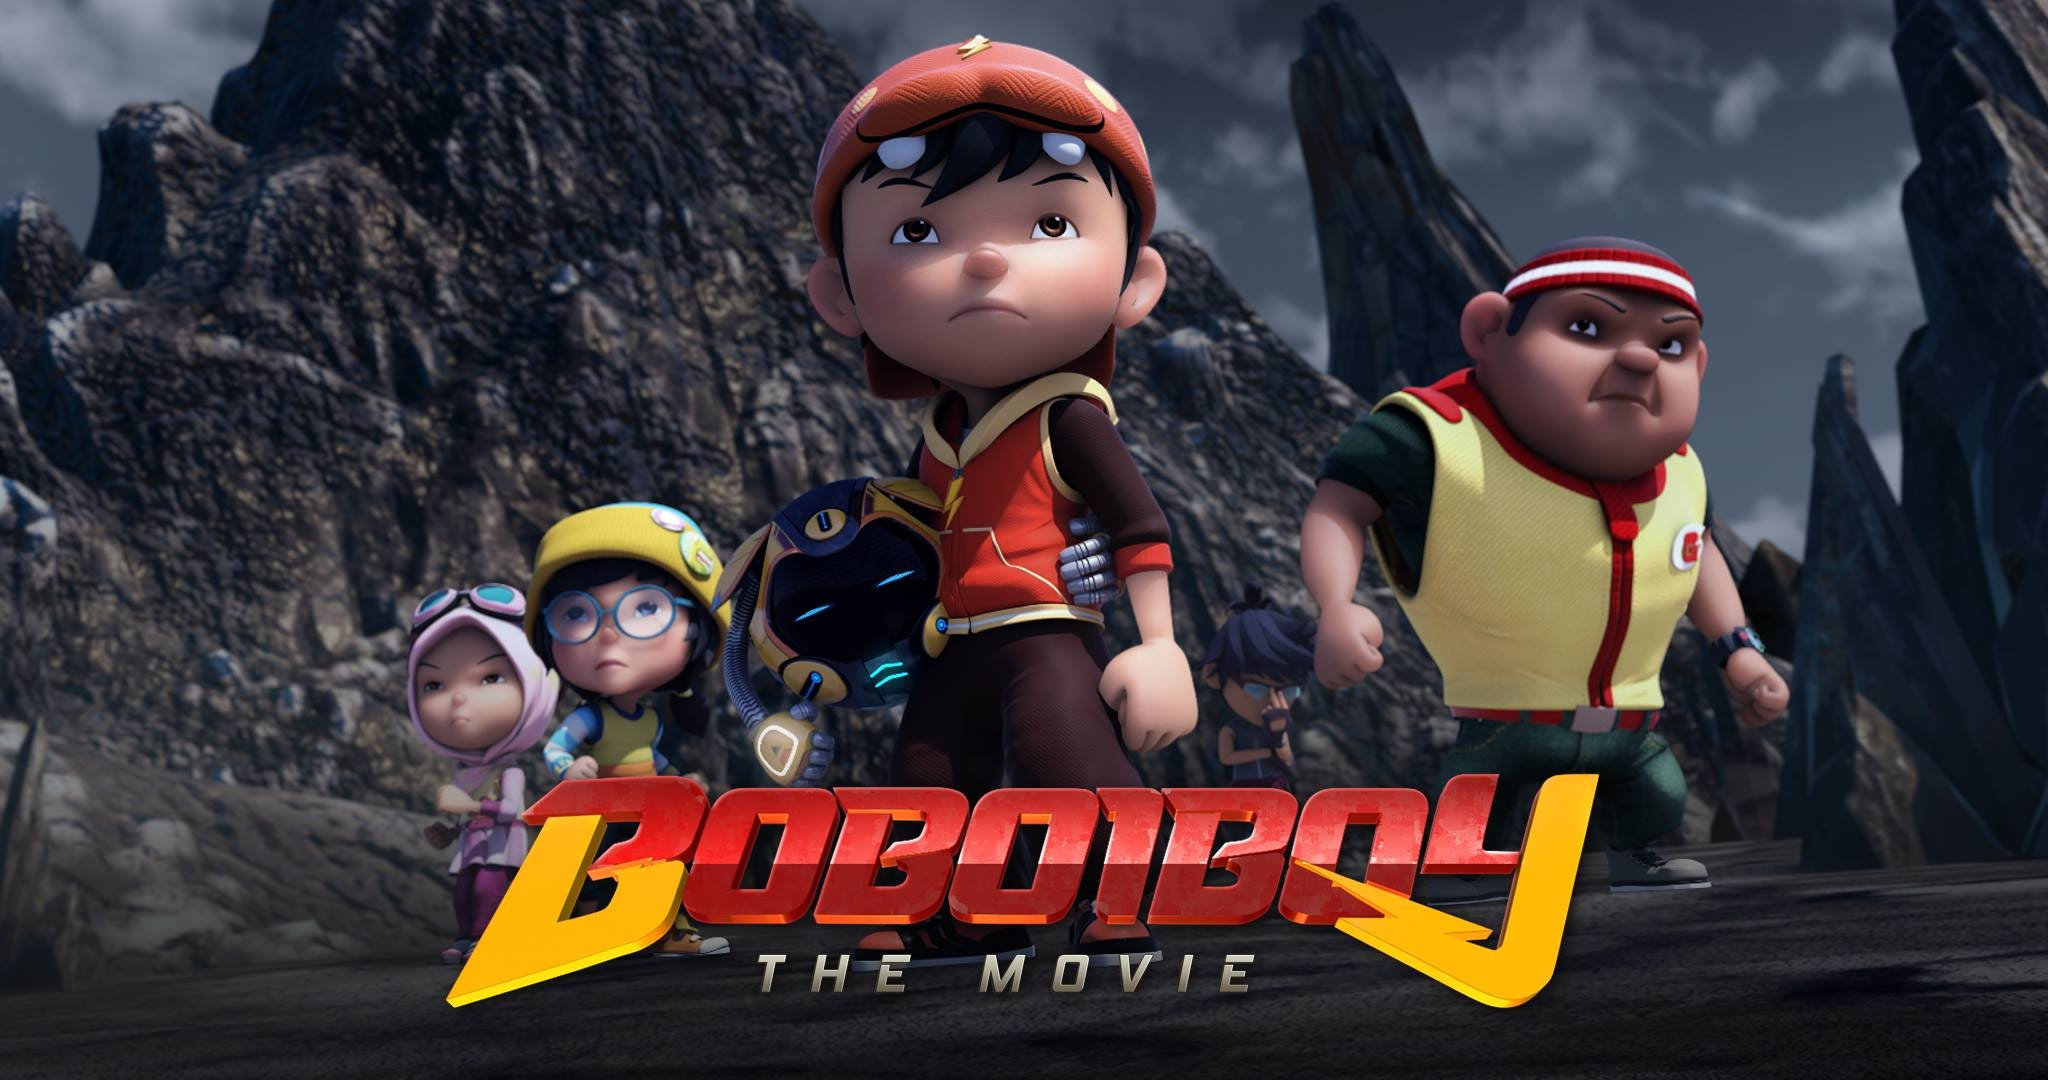 Boboiboy The Movie 2016 Photo Gallery Imdb